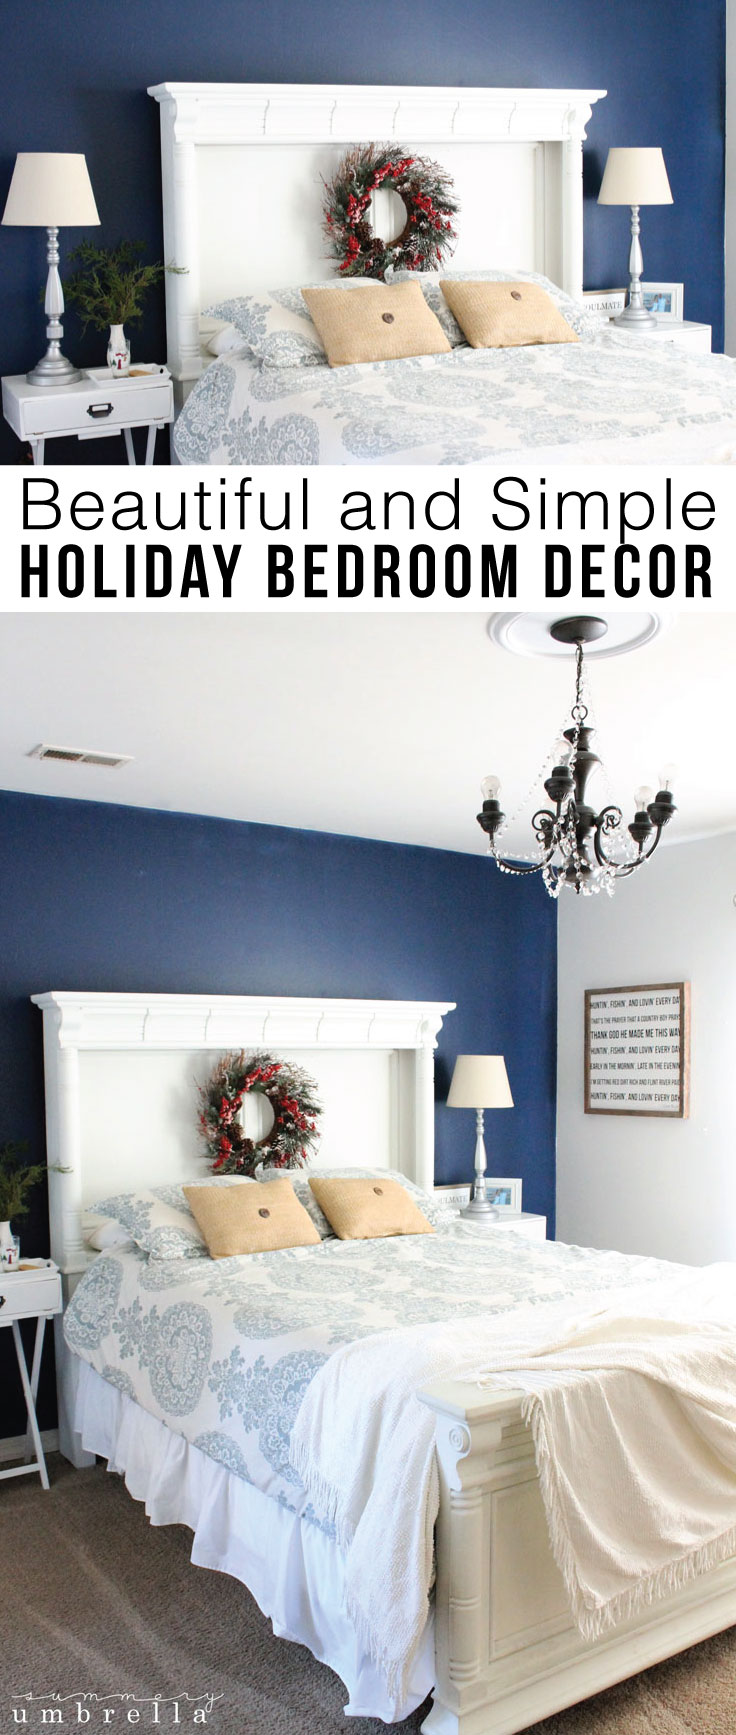 You don't need a lot of supplies to create a beautiful and festive bedroom. For instance, my simple holiday bedroom decor today on the blog is so easy!